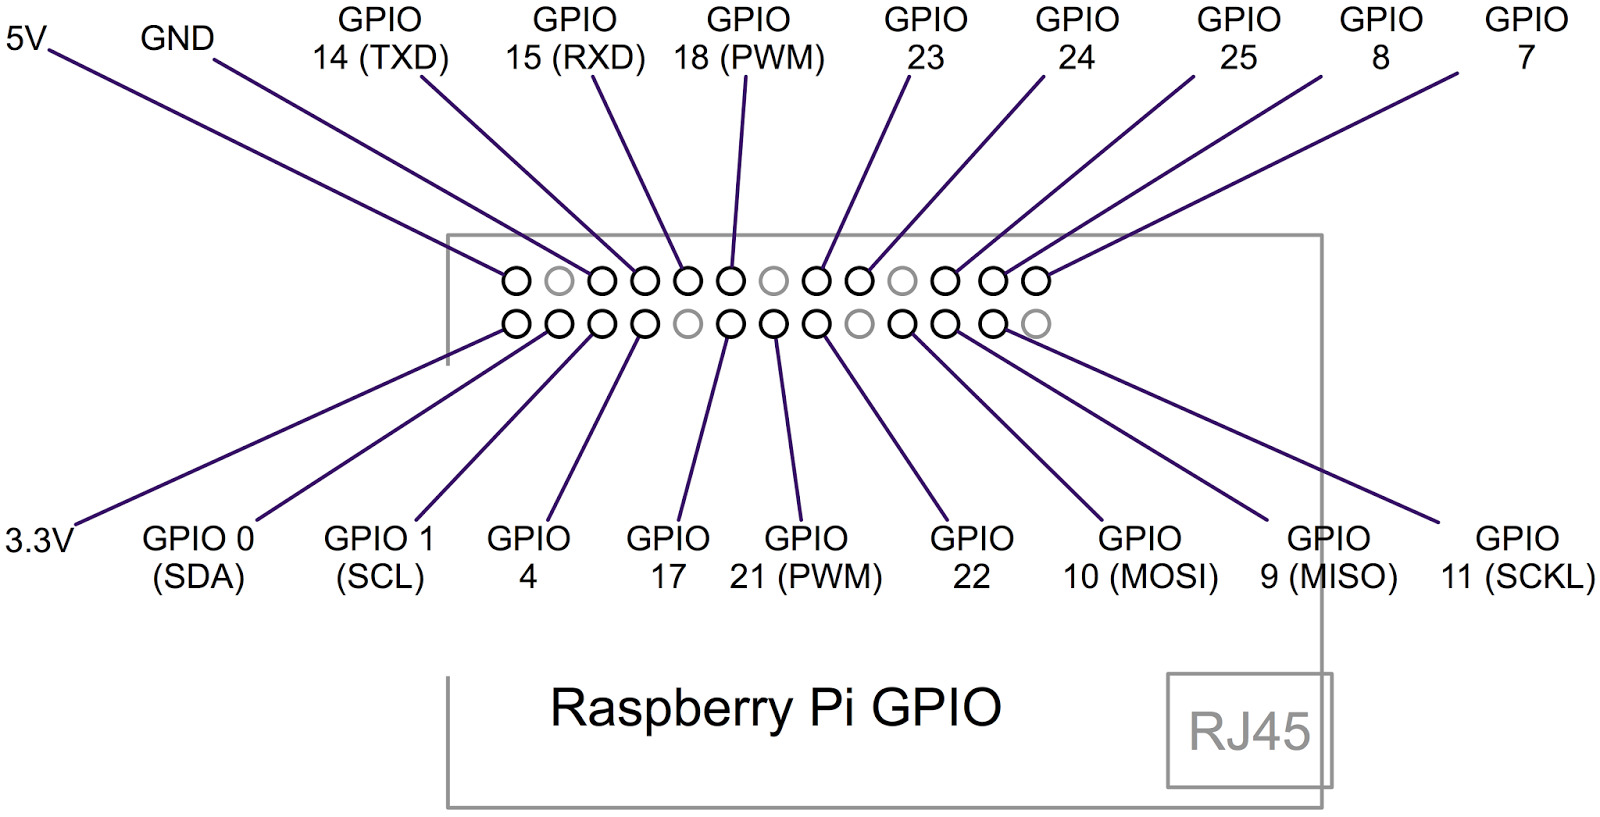 Raspberry Pi Developers Guide Gpio Python Wiringpi Input Check The Diagram Below If You Are Not Sure About Connections But Note That Connect Is Being Viewed Upside Down So Rotate By 180